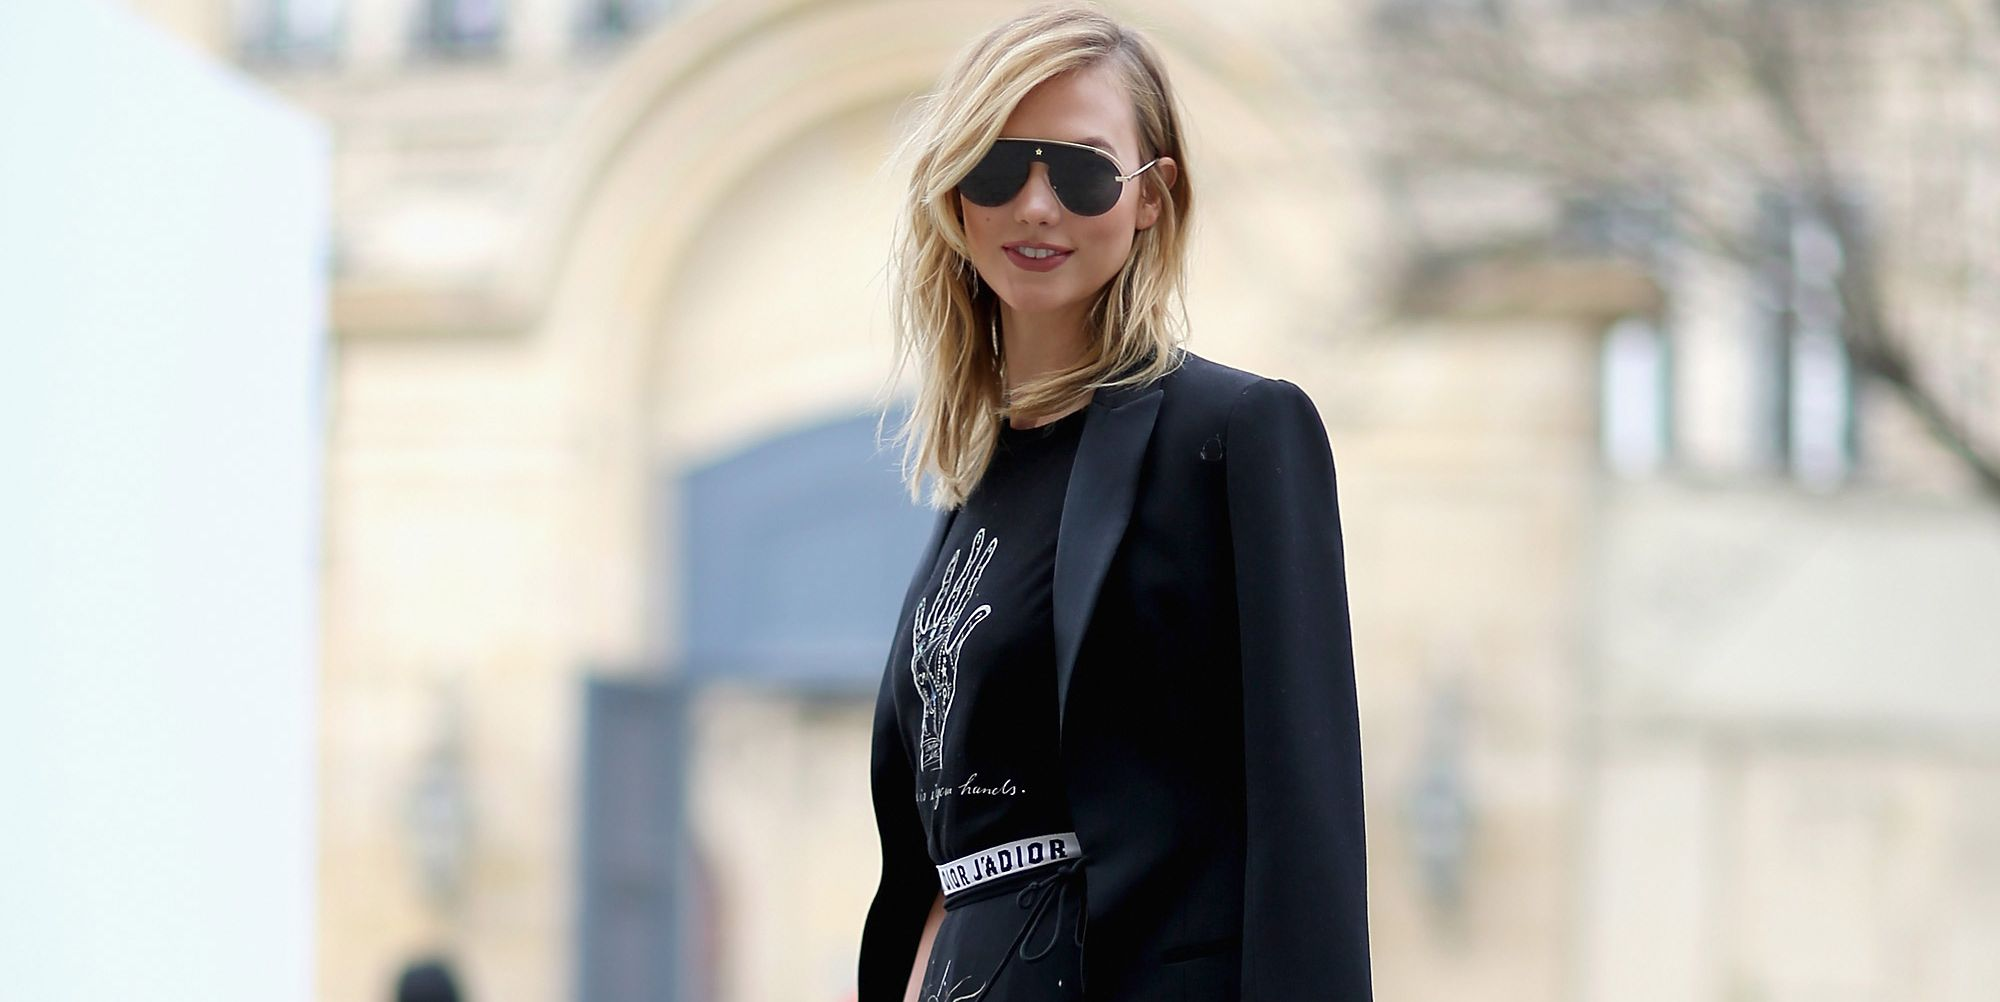 Karlie Kloss at the Dior show